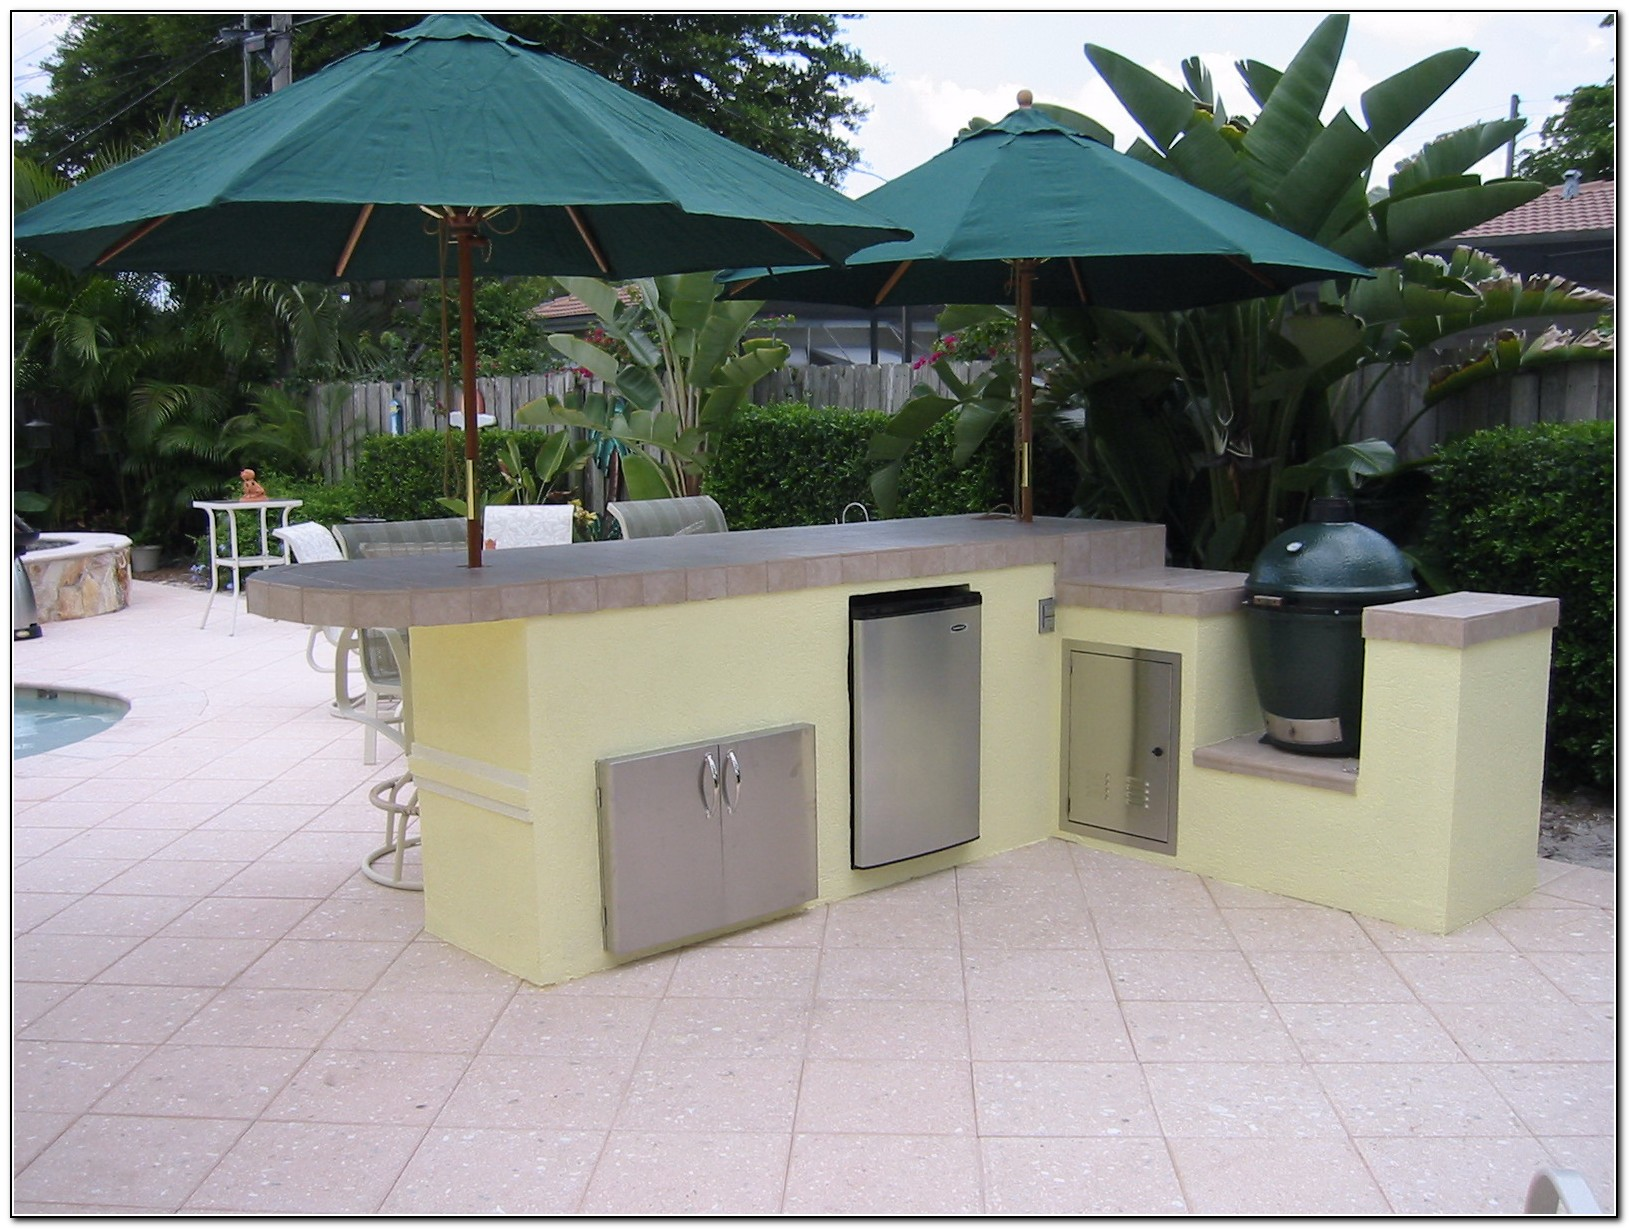 outdoor kitchen ideas uk download page home design ideas On outdoor kitchen designs uk